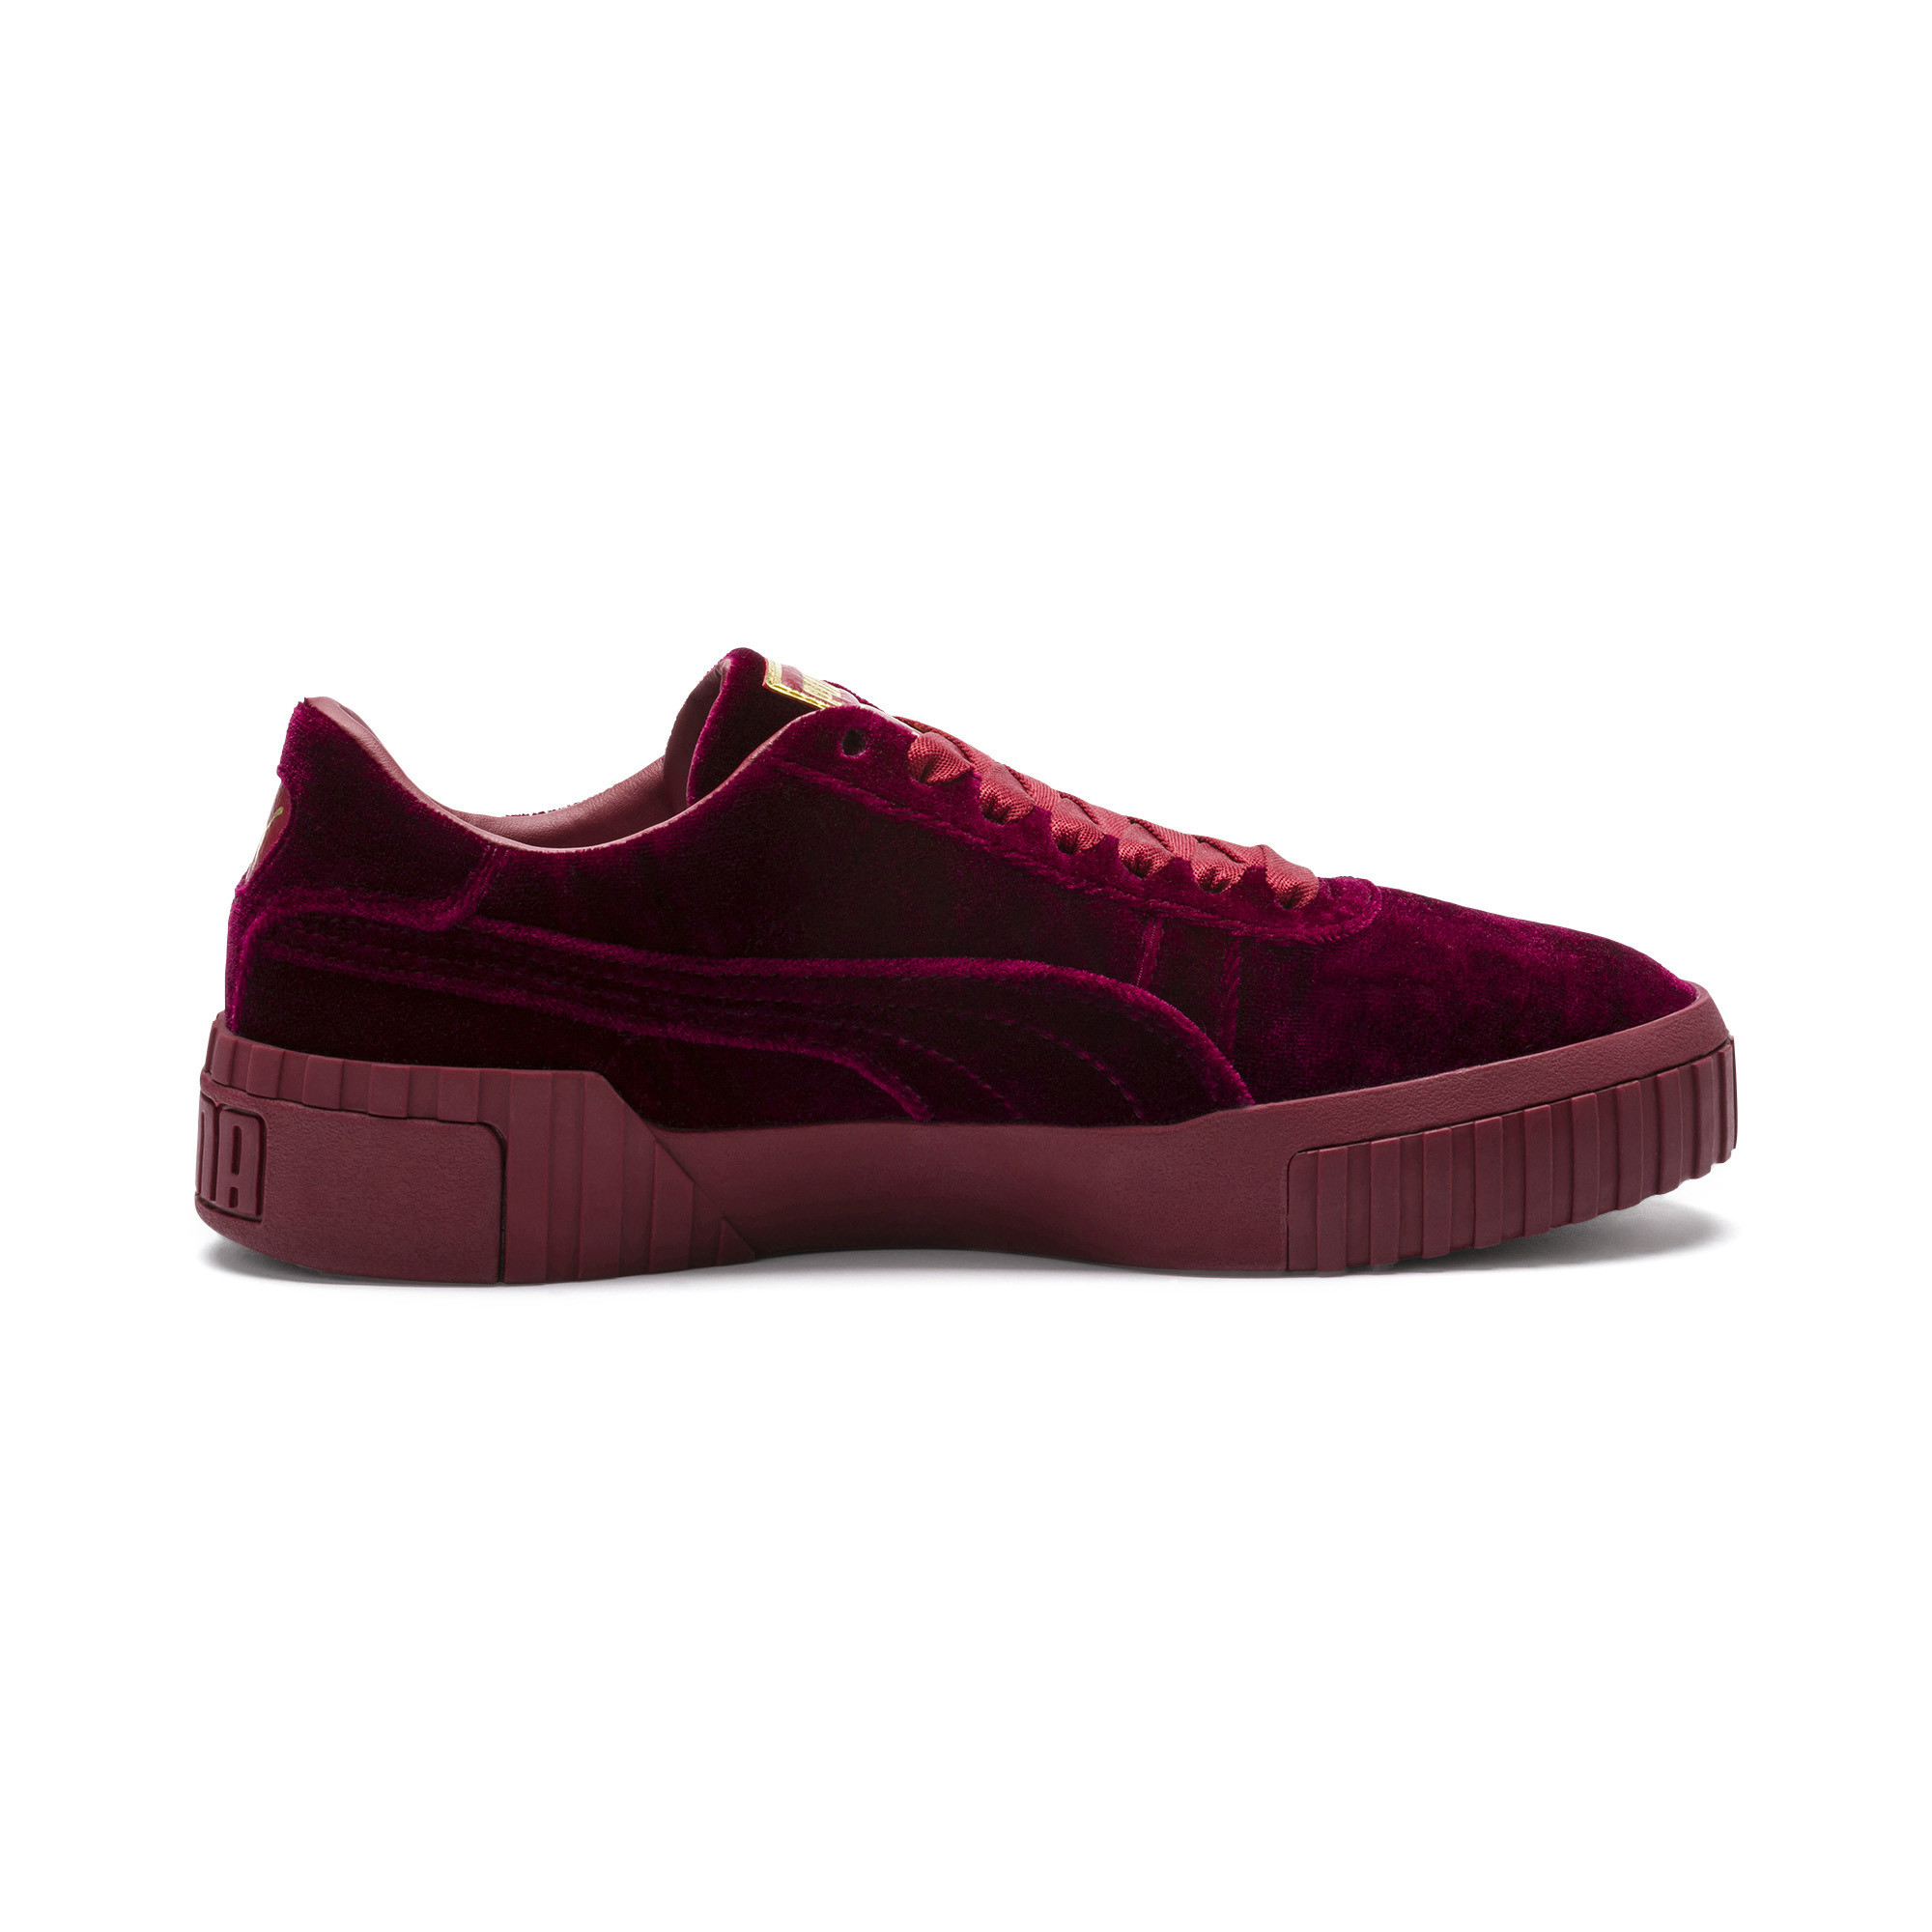 PUMA-Cali-Velvet-Women-039-s-Sneakers-Women-Shoe-Evolution thumbnail 12